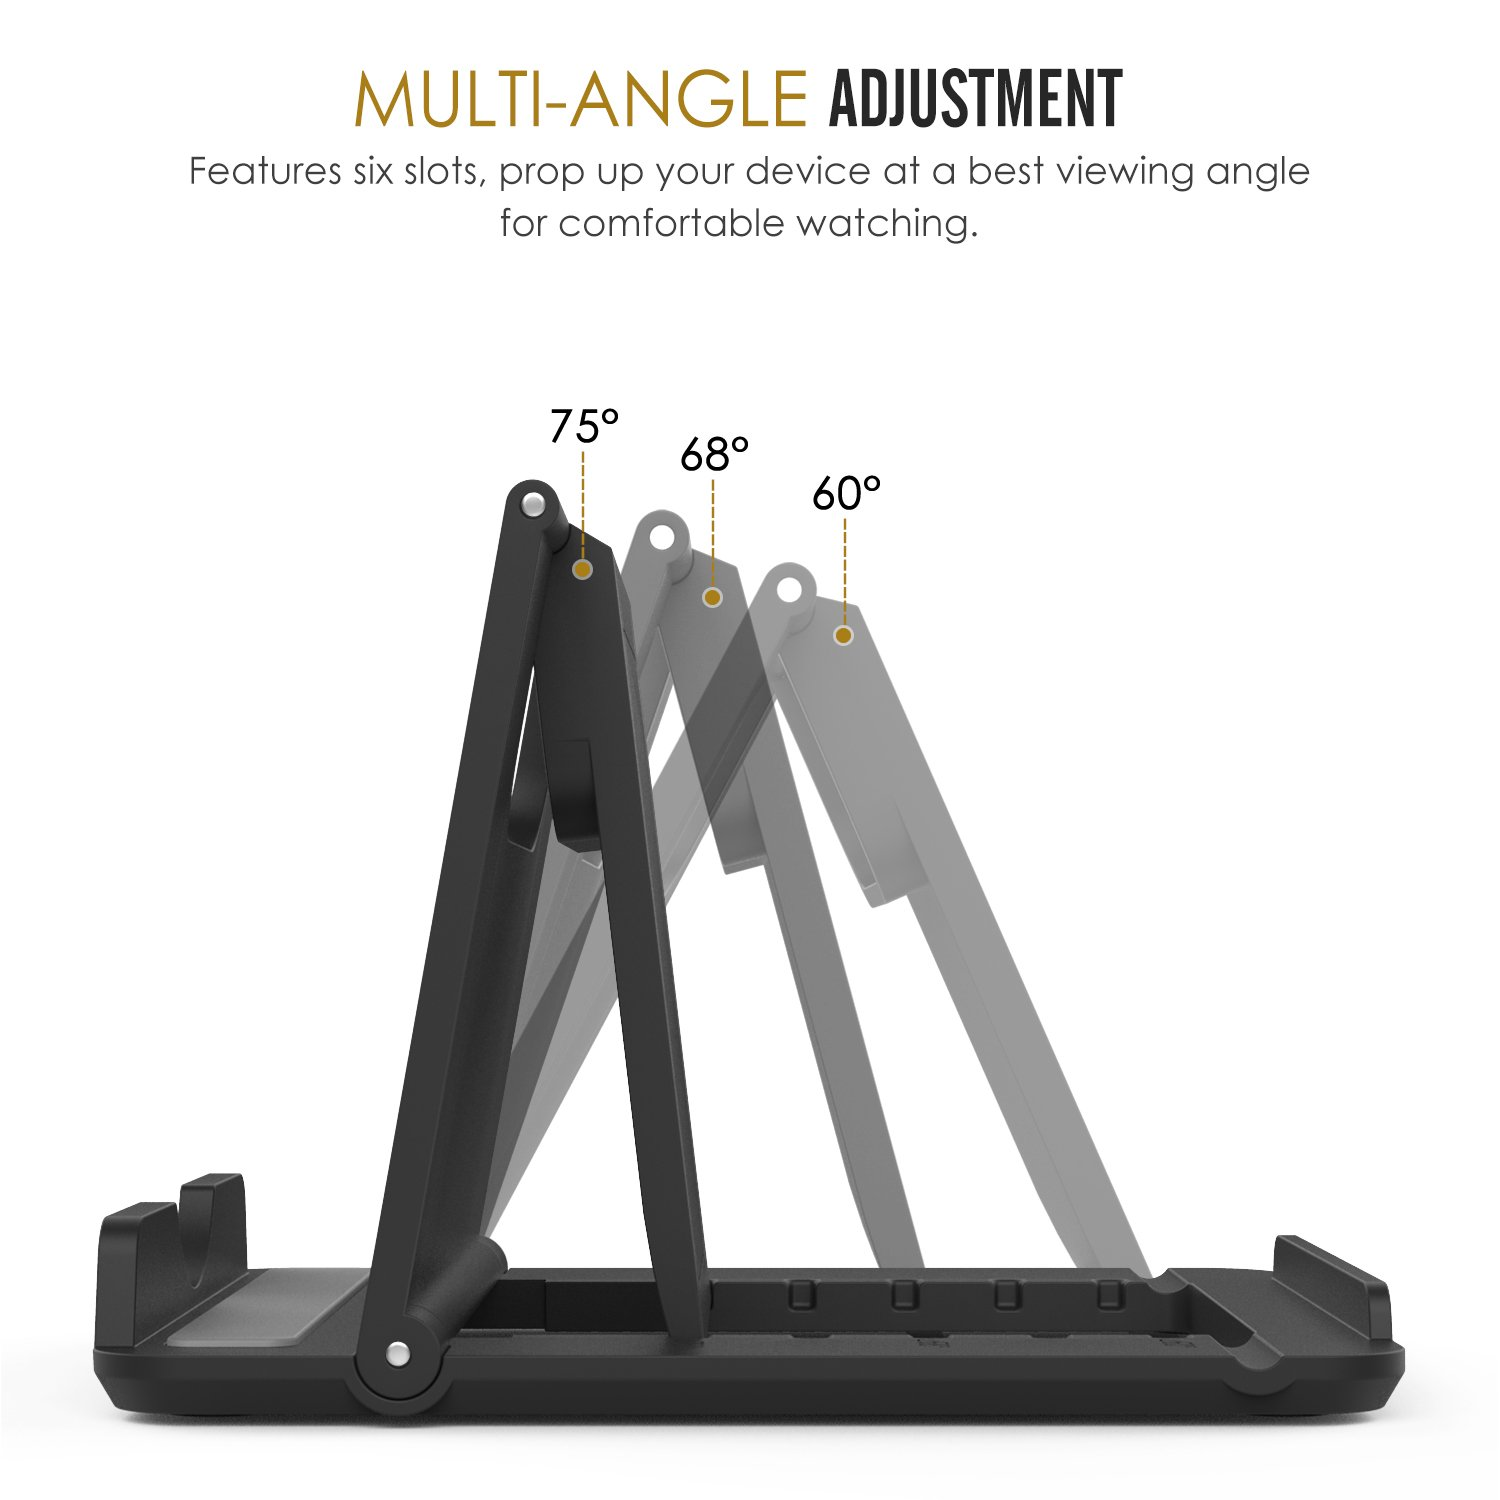 Amazon [2 Pack] MoKo Cellphone Tablet Stand Universal Foldable Multi angle Desktop Holder for iPhone X 8 8 Plus 7 7 Plus Galaxy S9 S9 Plus Note 8